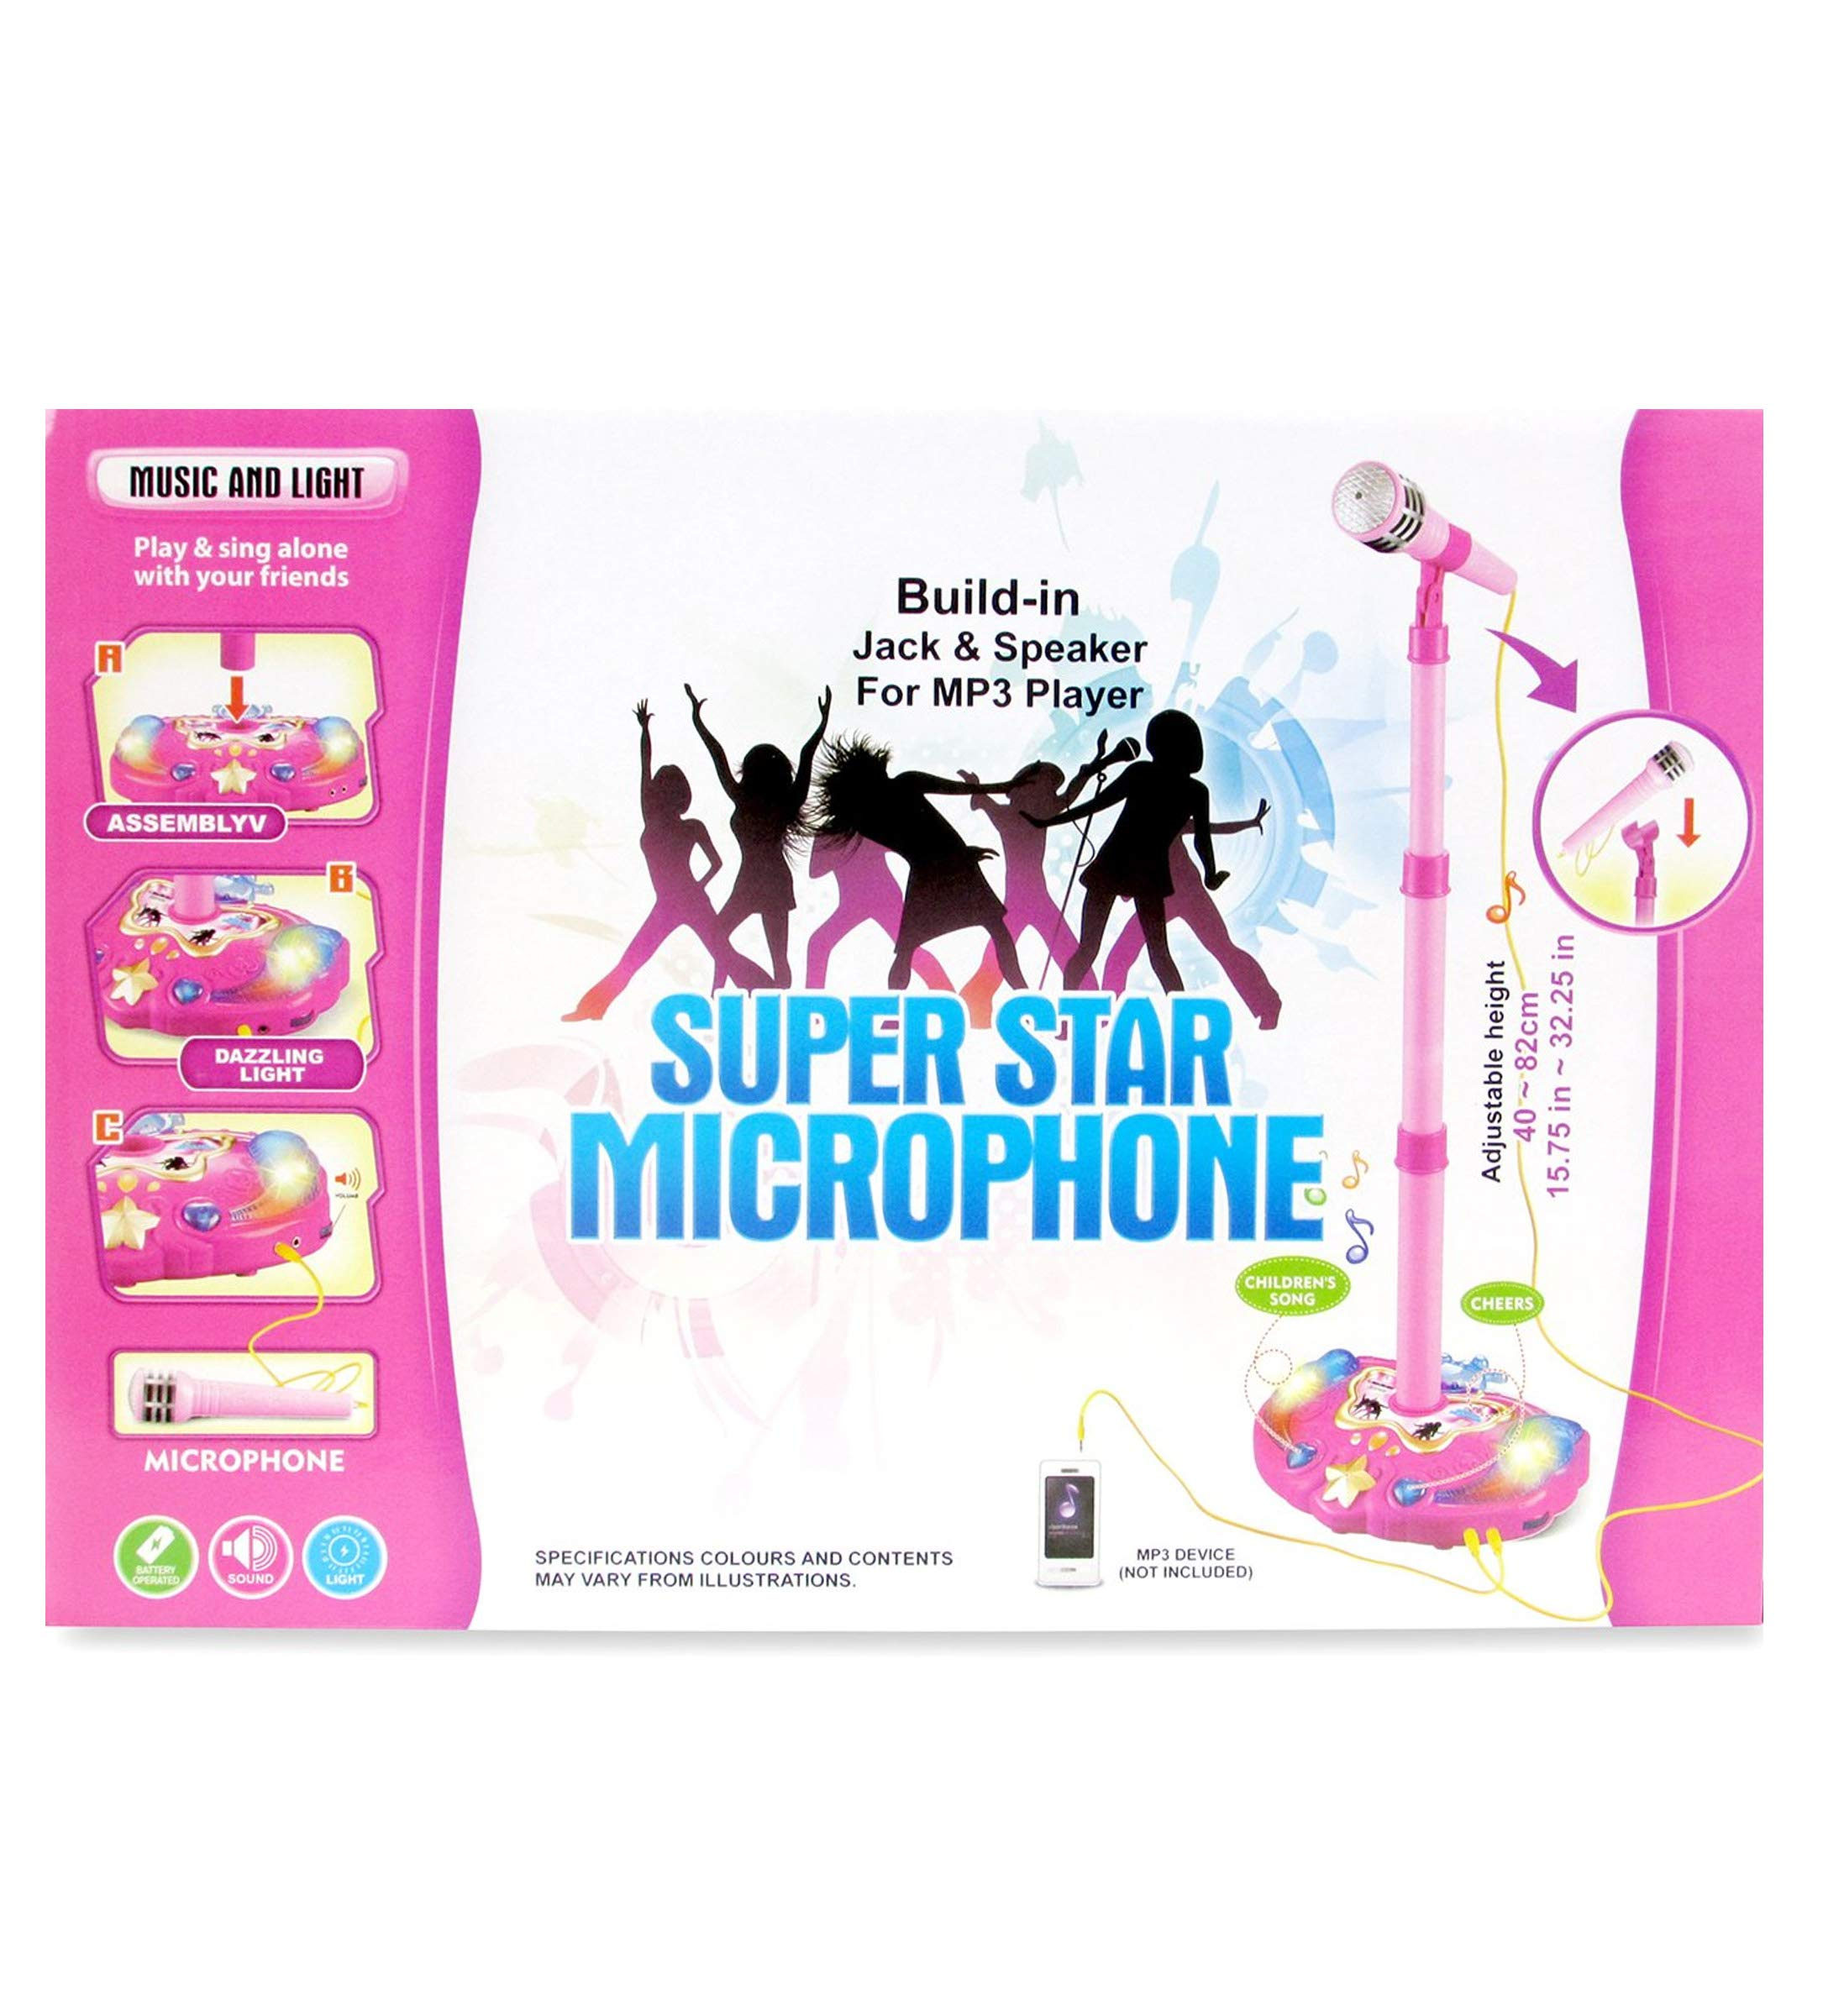 Mozlly Pink Light Up Karaoke Machine with Toy Microphone & Adjustable Stand, Connect to MP3 Player AUX Smart Phones for Solo Singing Parties Sing-A-Along Built in Speaker Flashing Lights for Kids by Mozlly (Image #2)